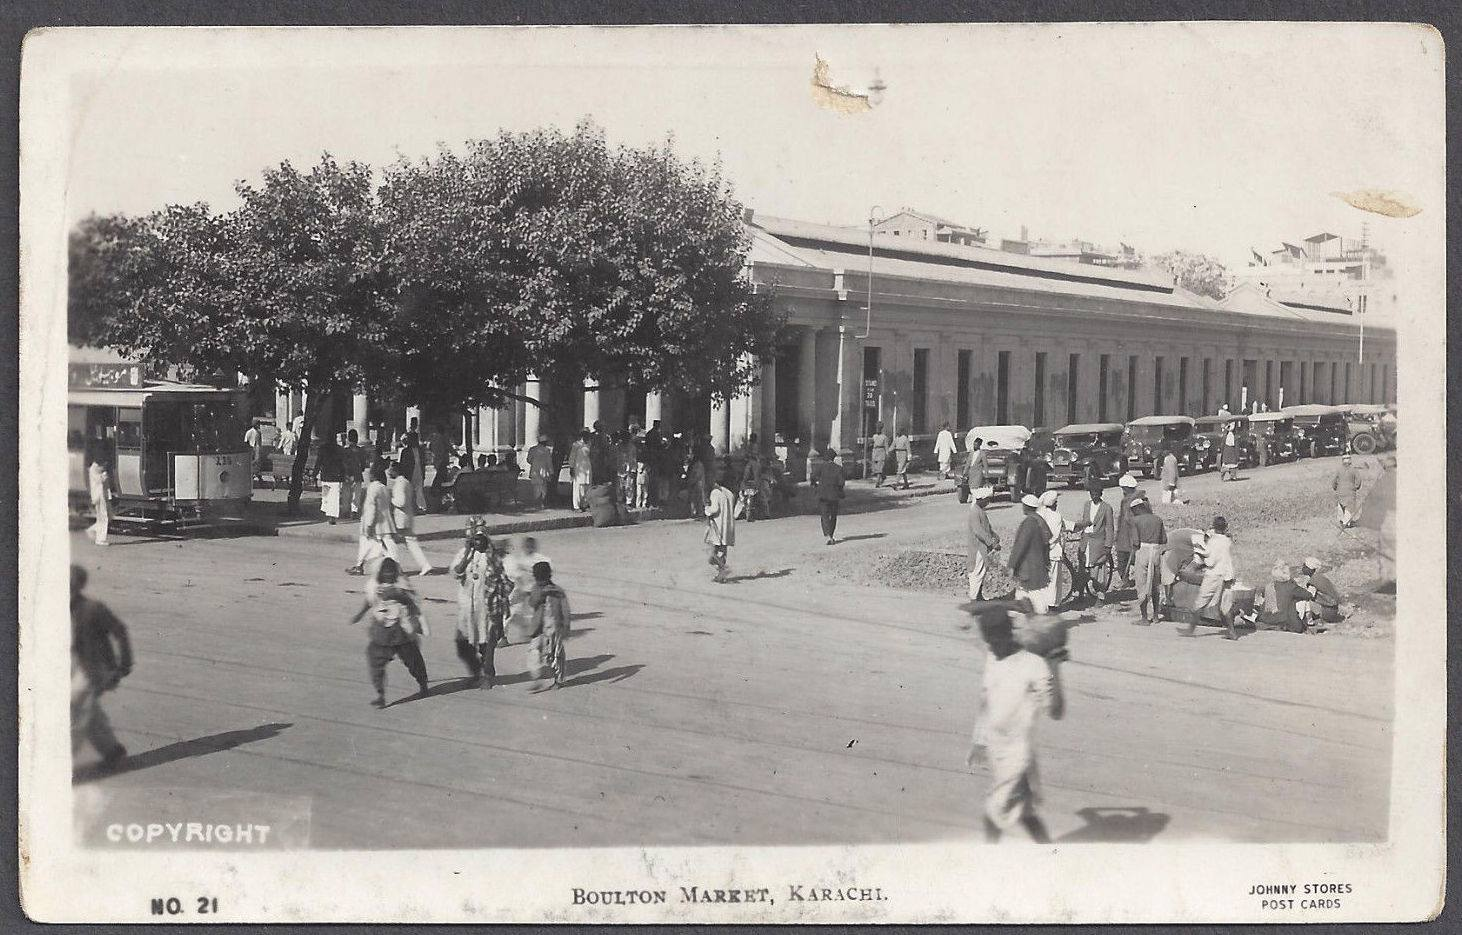 35 Photos of Old Karachi Locations That Will Remind You of the